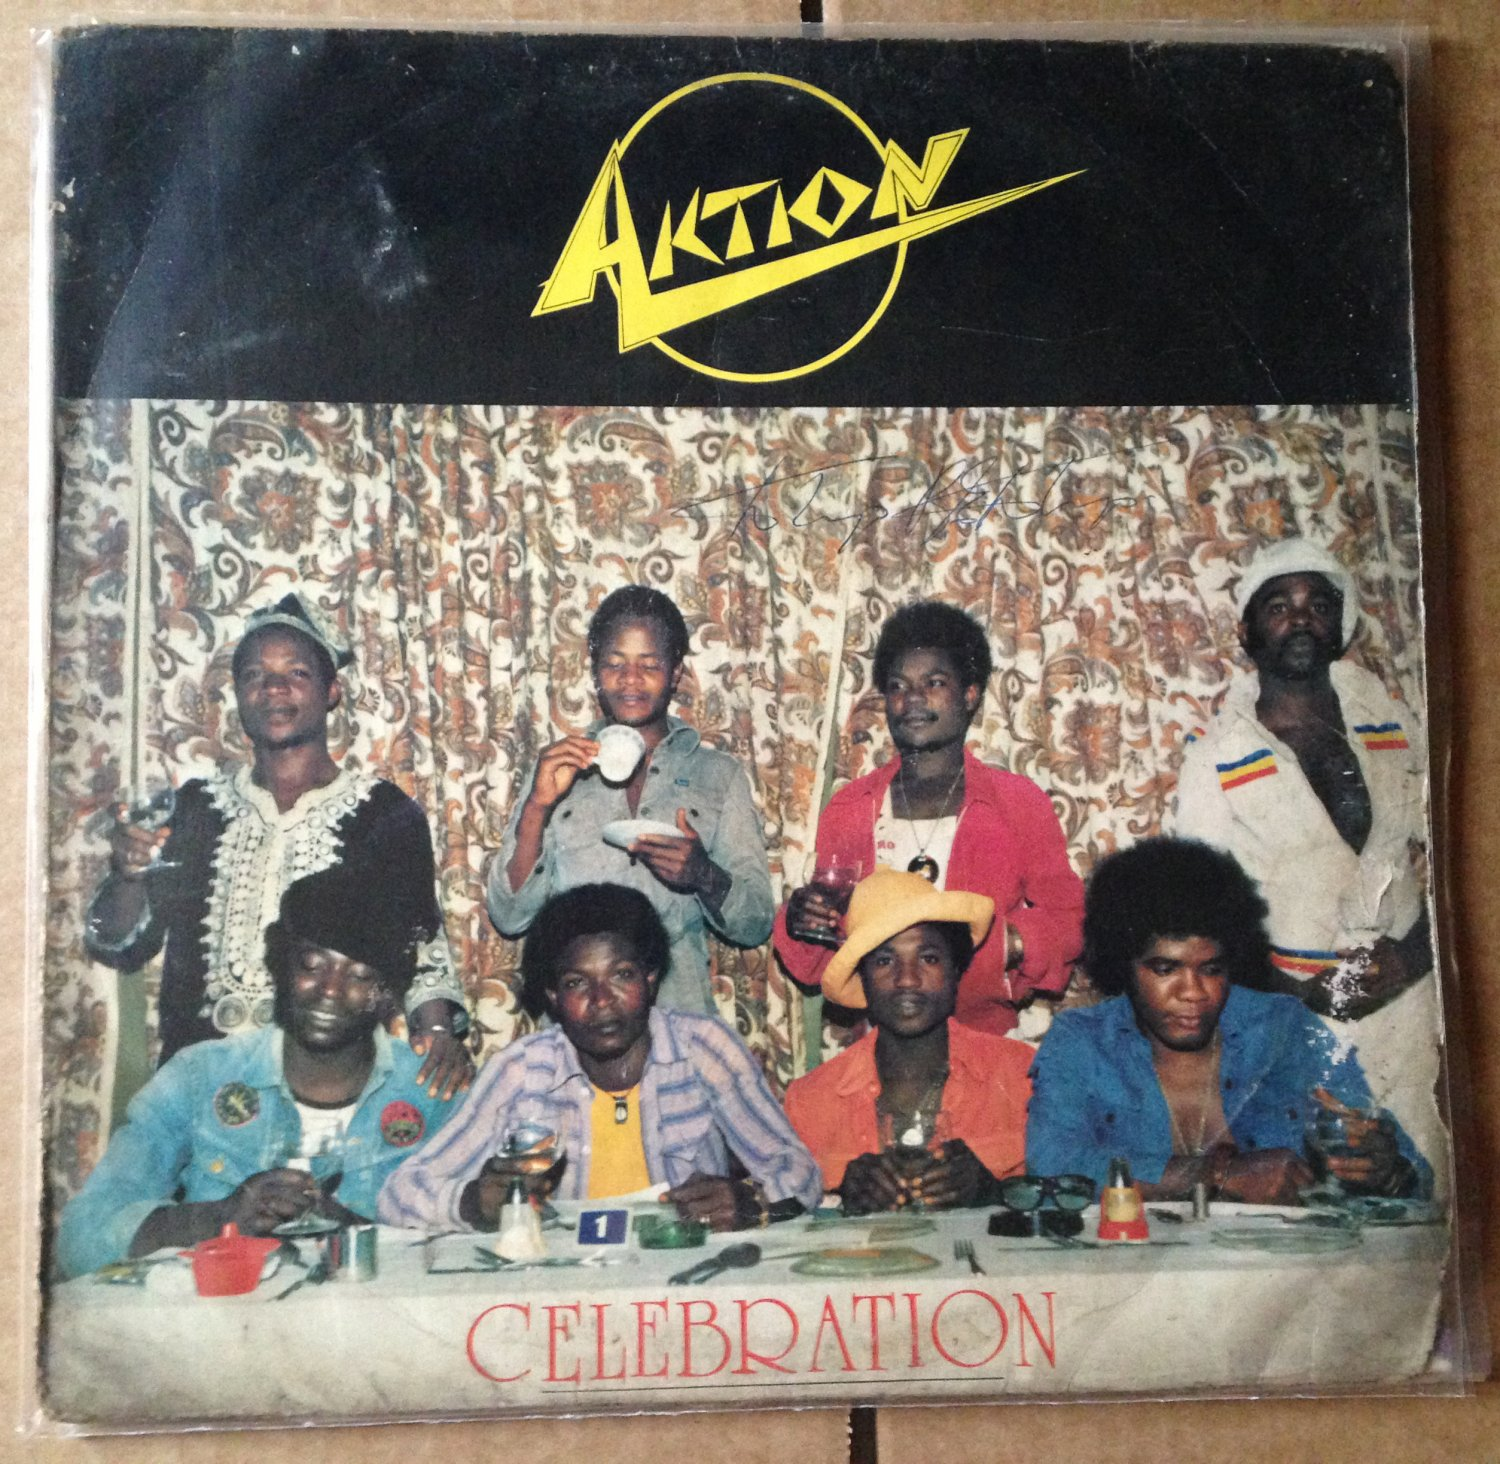 AKTION LP celebration AFRO FUNK PSYCH ULTRA RARE mp3 LISTEN